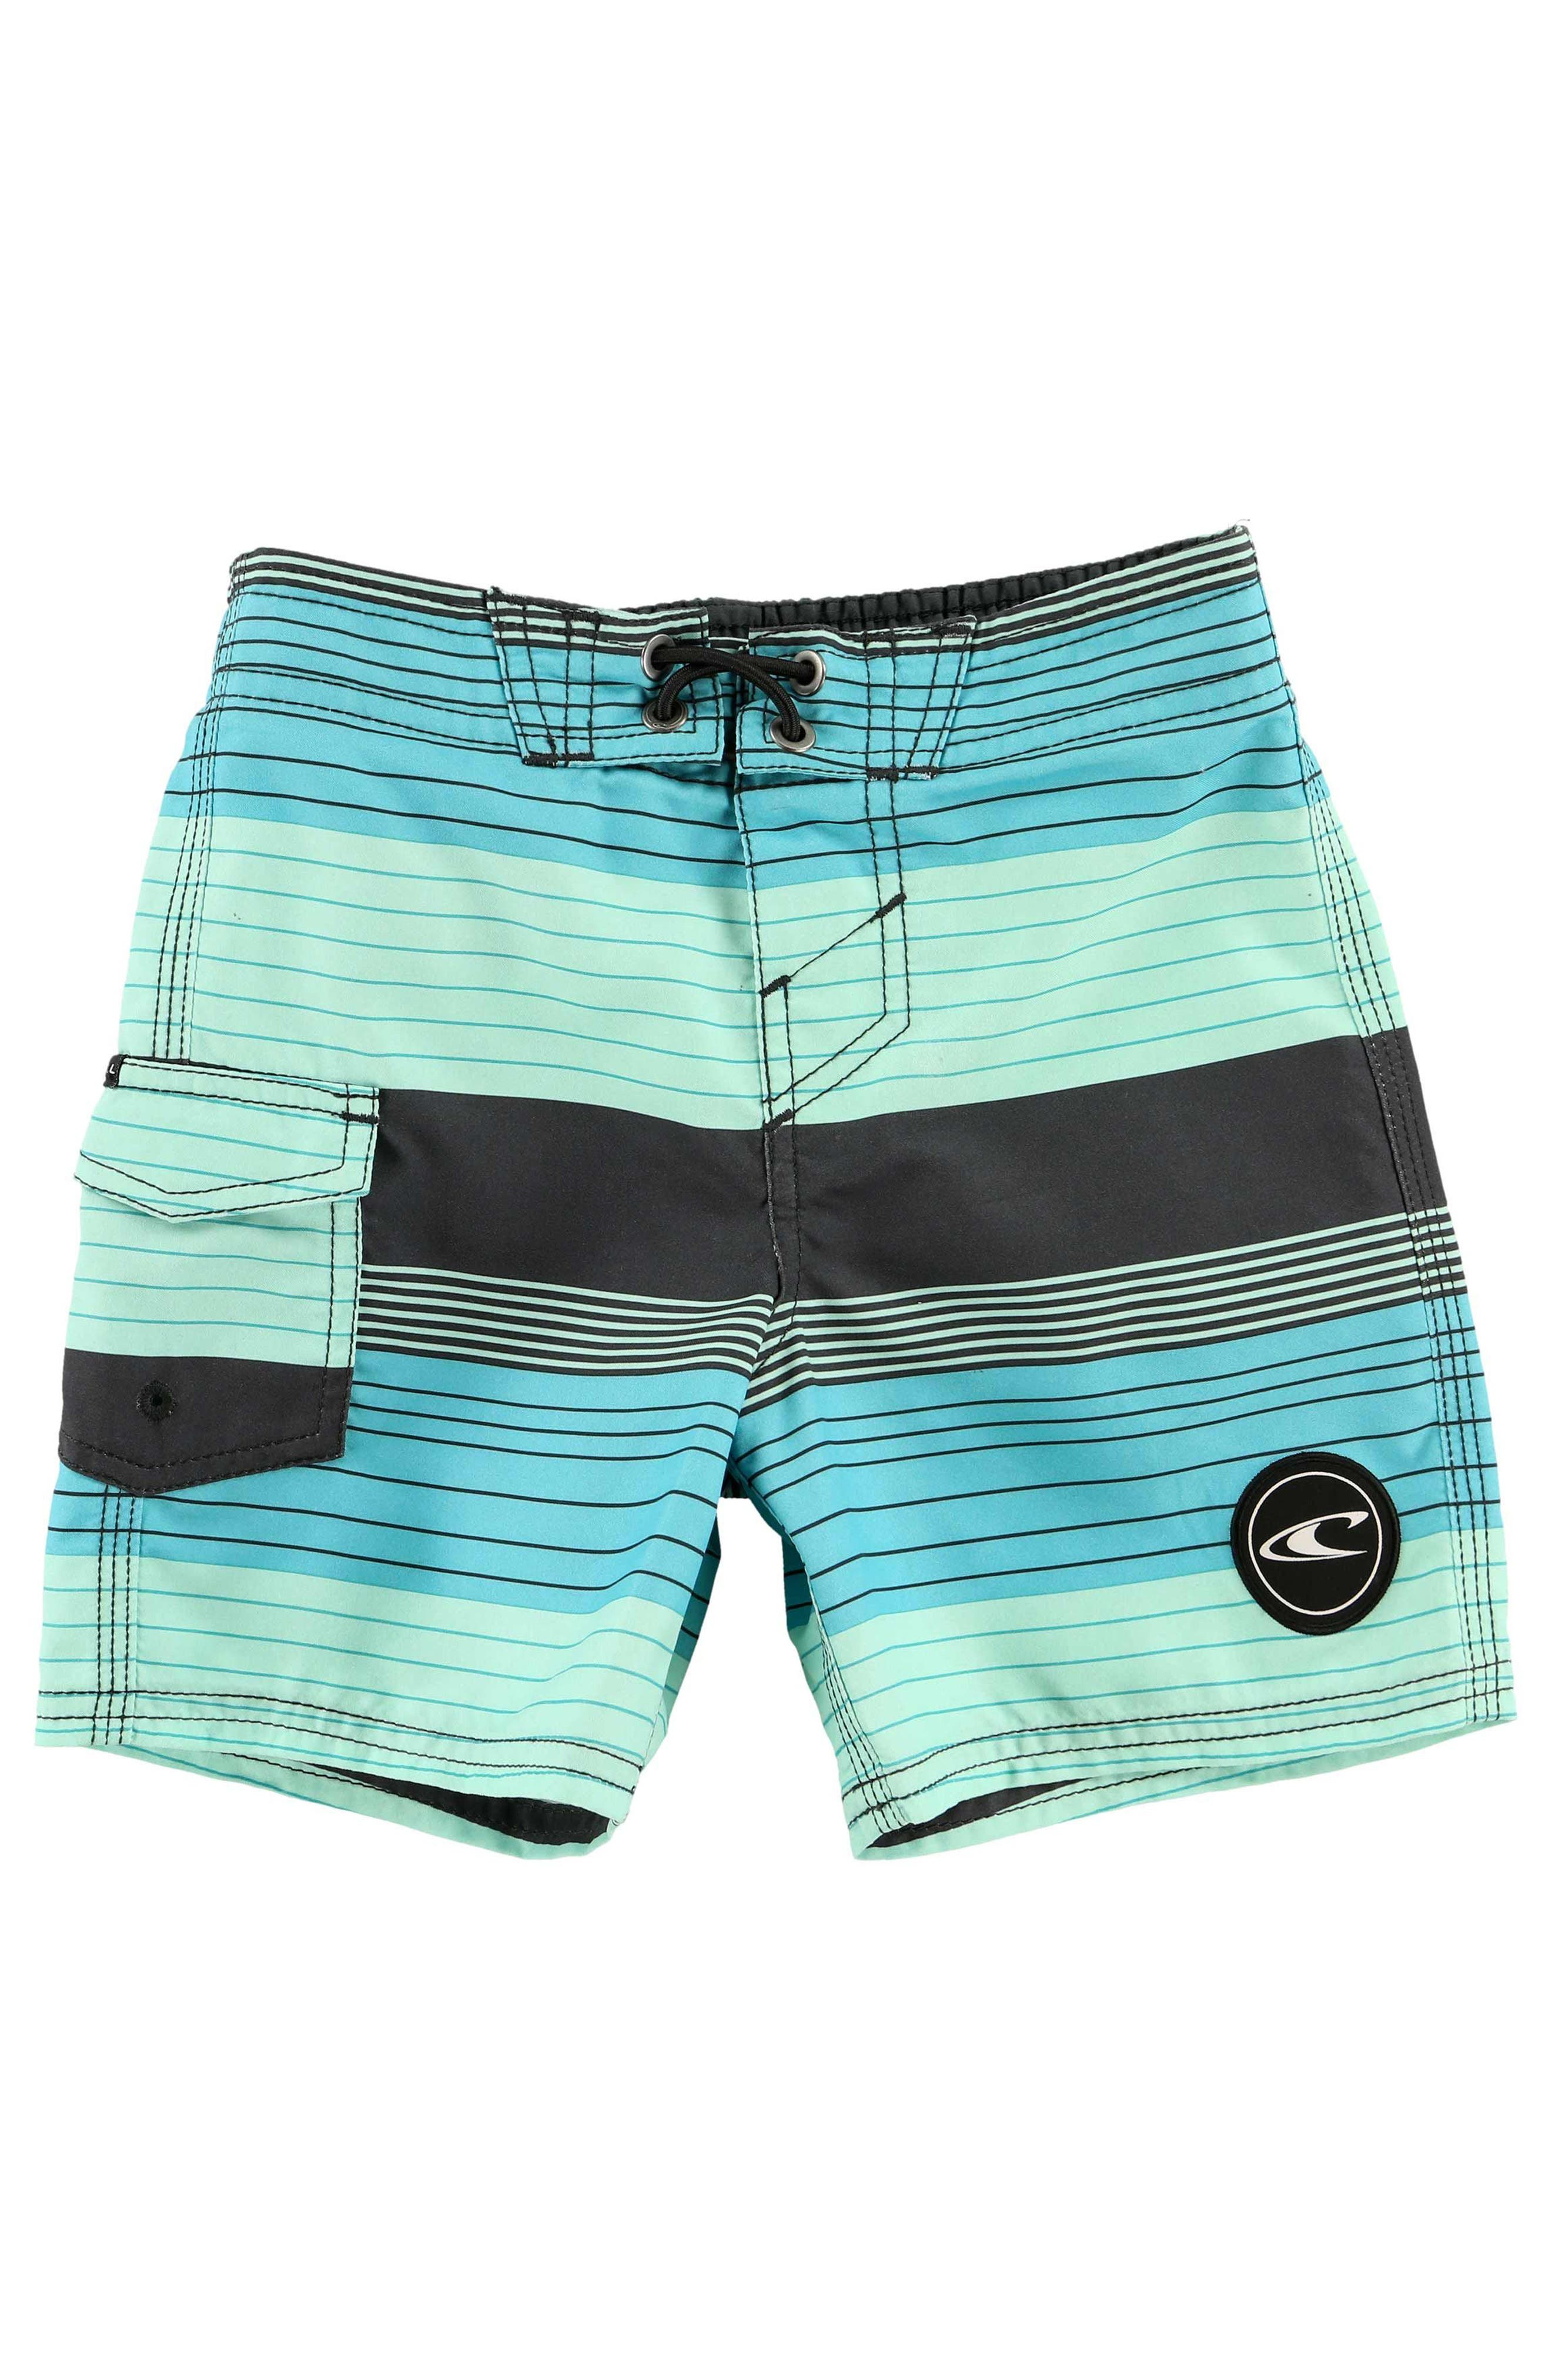 O'Neill Santa Cruz Stripe Board Shorts (Toddler Boys)